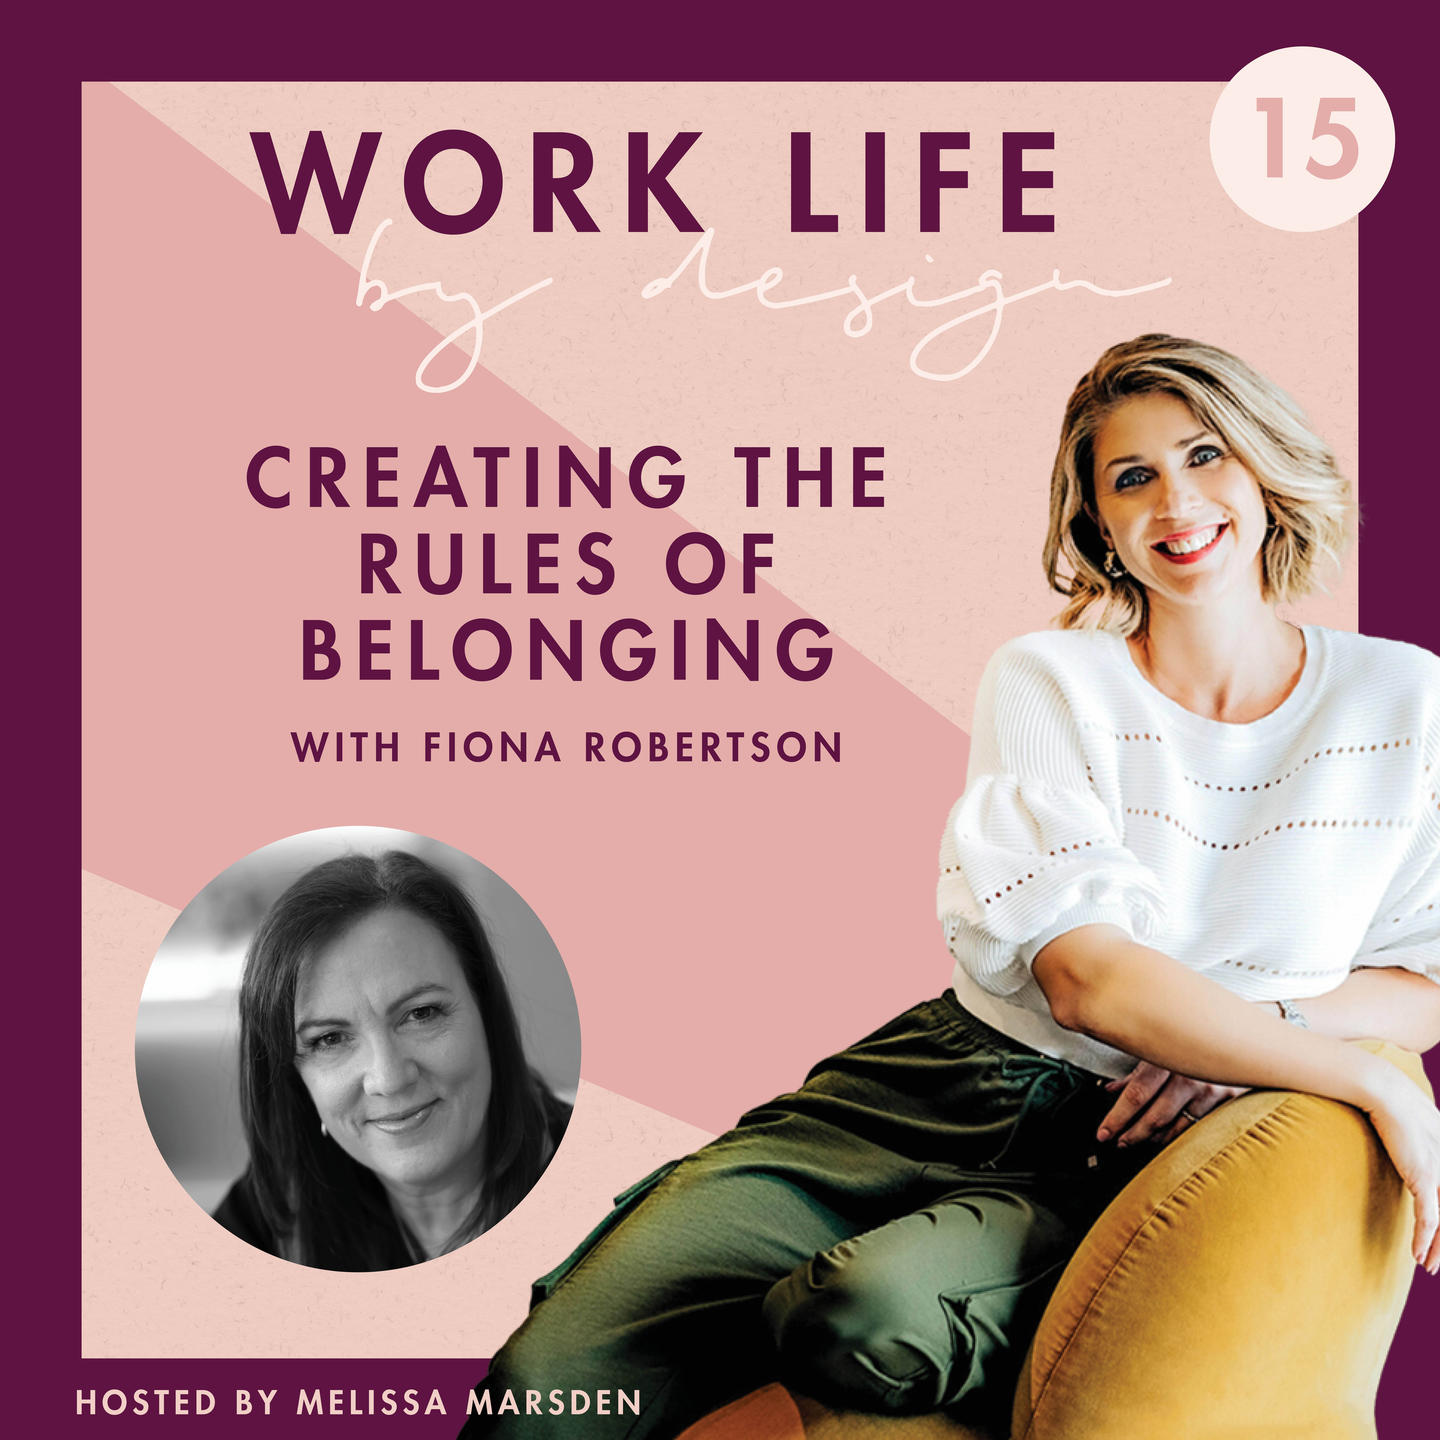 Creating the rules of belonging with Fiona Robertson | Melissa Marsden Worklife by Design Podcast